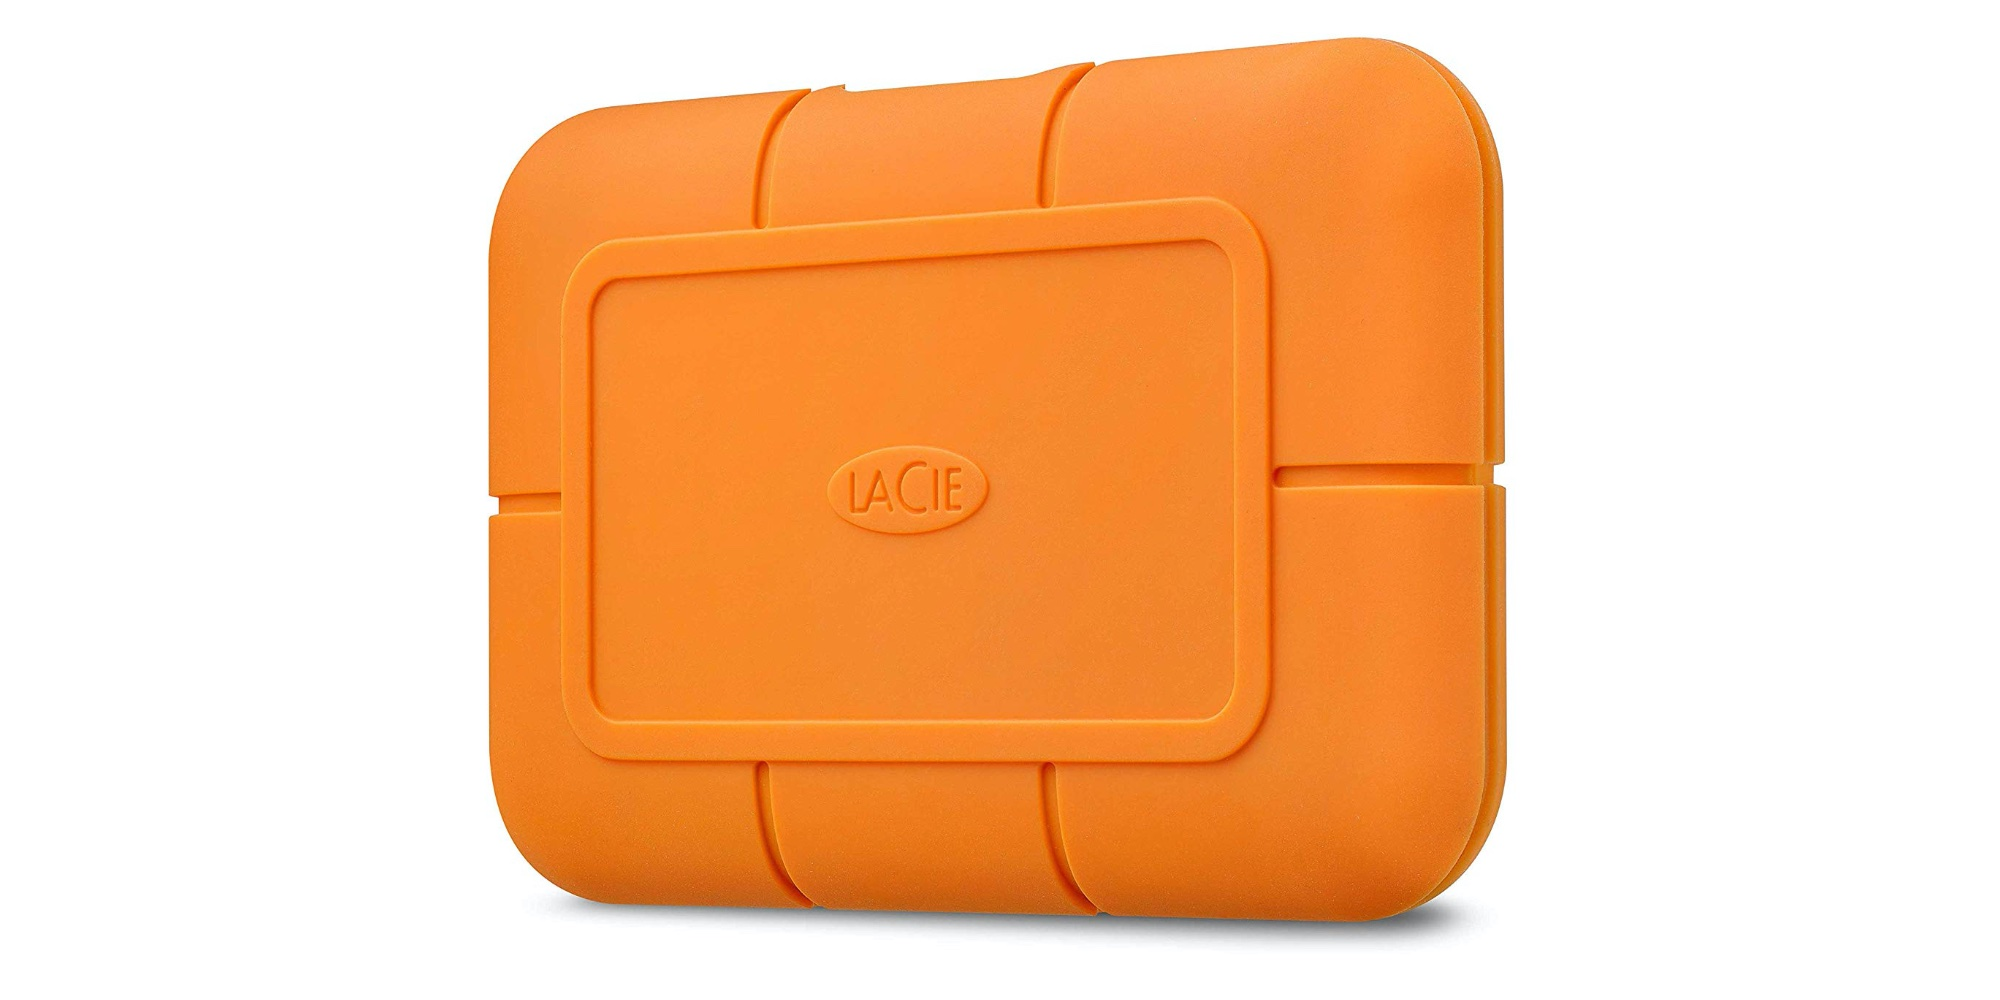 LaCie's Rugged 500GB Portable USB-C SSD sees $50 discount to $130 (Amazon low) - 9to5Toys